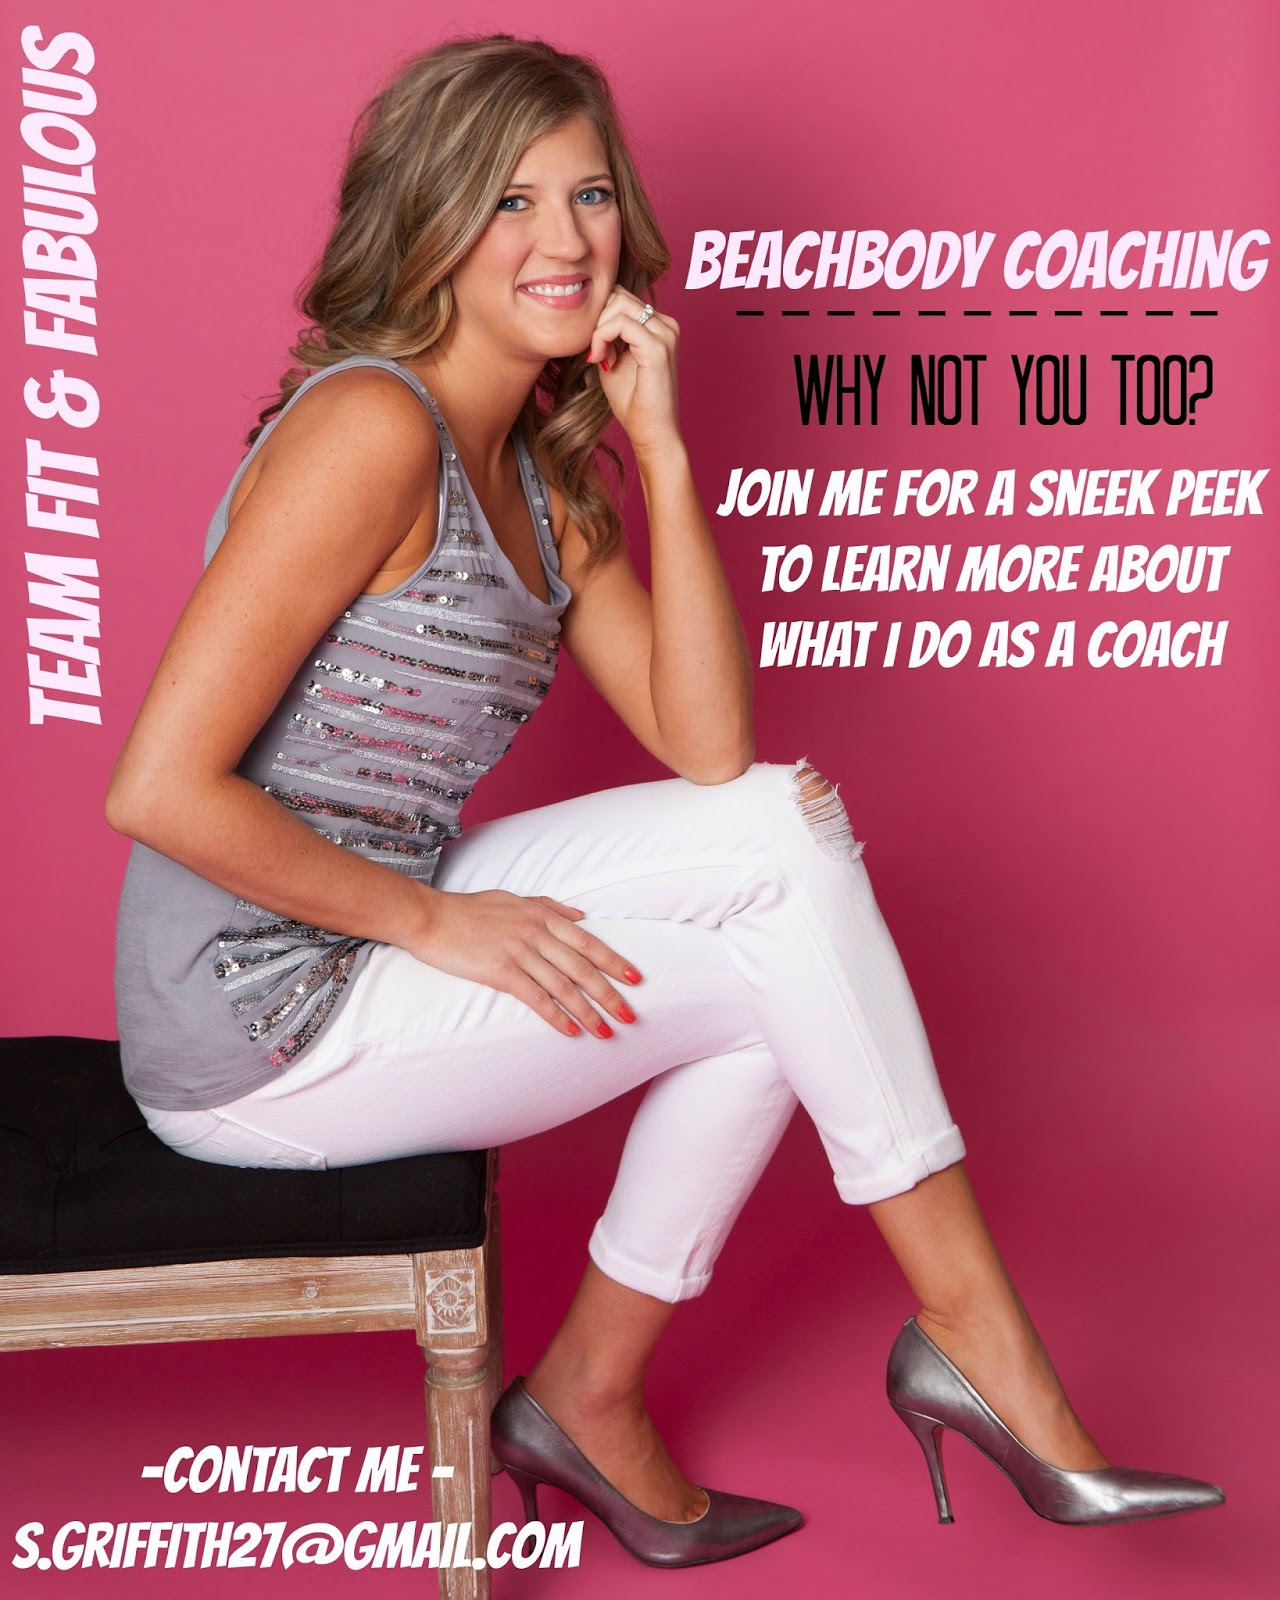 sarah griffith beachbody coaching why not you too work from home work from home opportunities beachbody coaching be your own boss